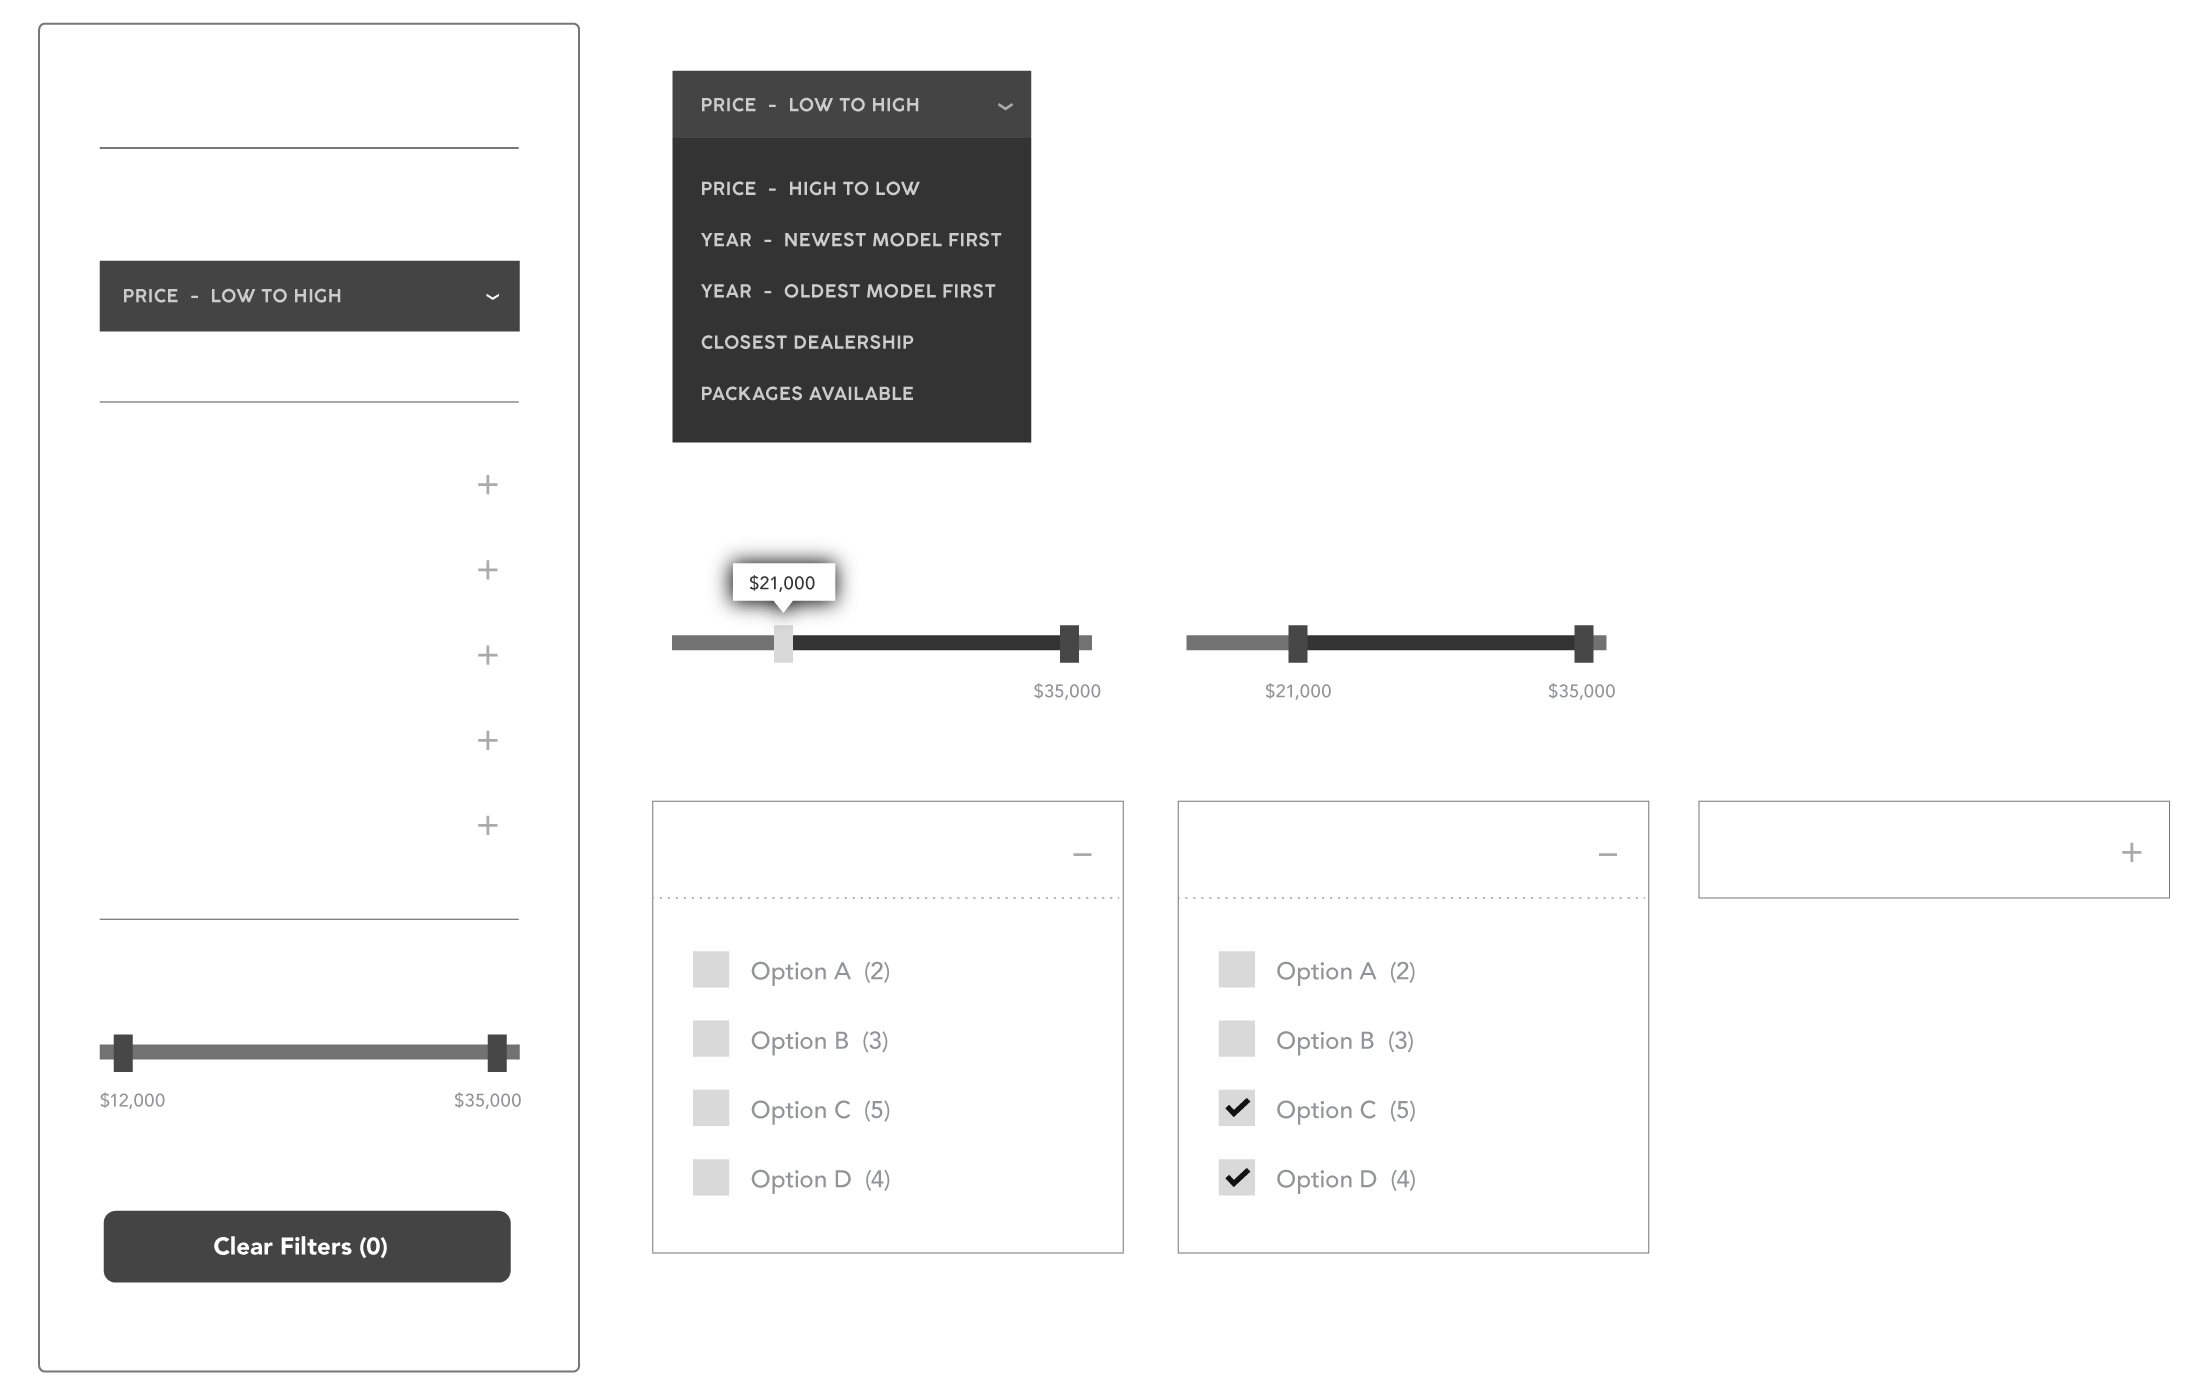 The filtering wireframe